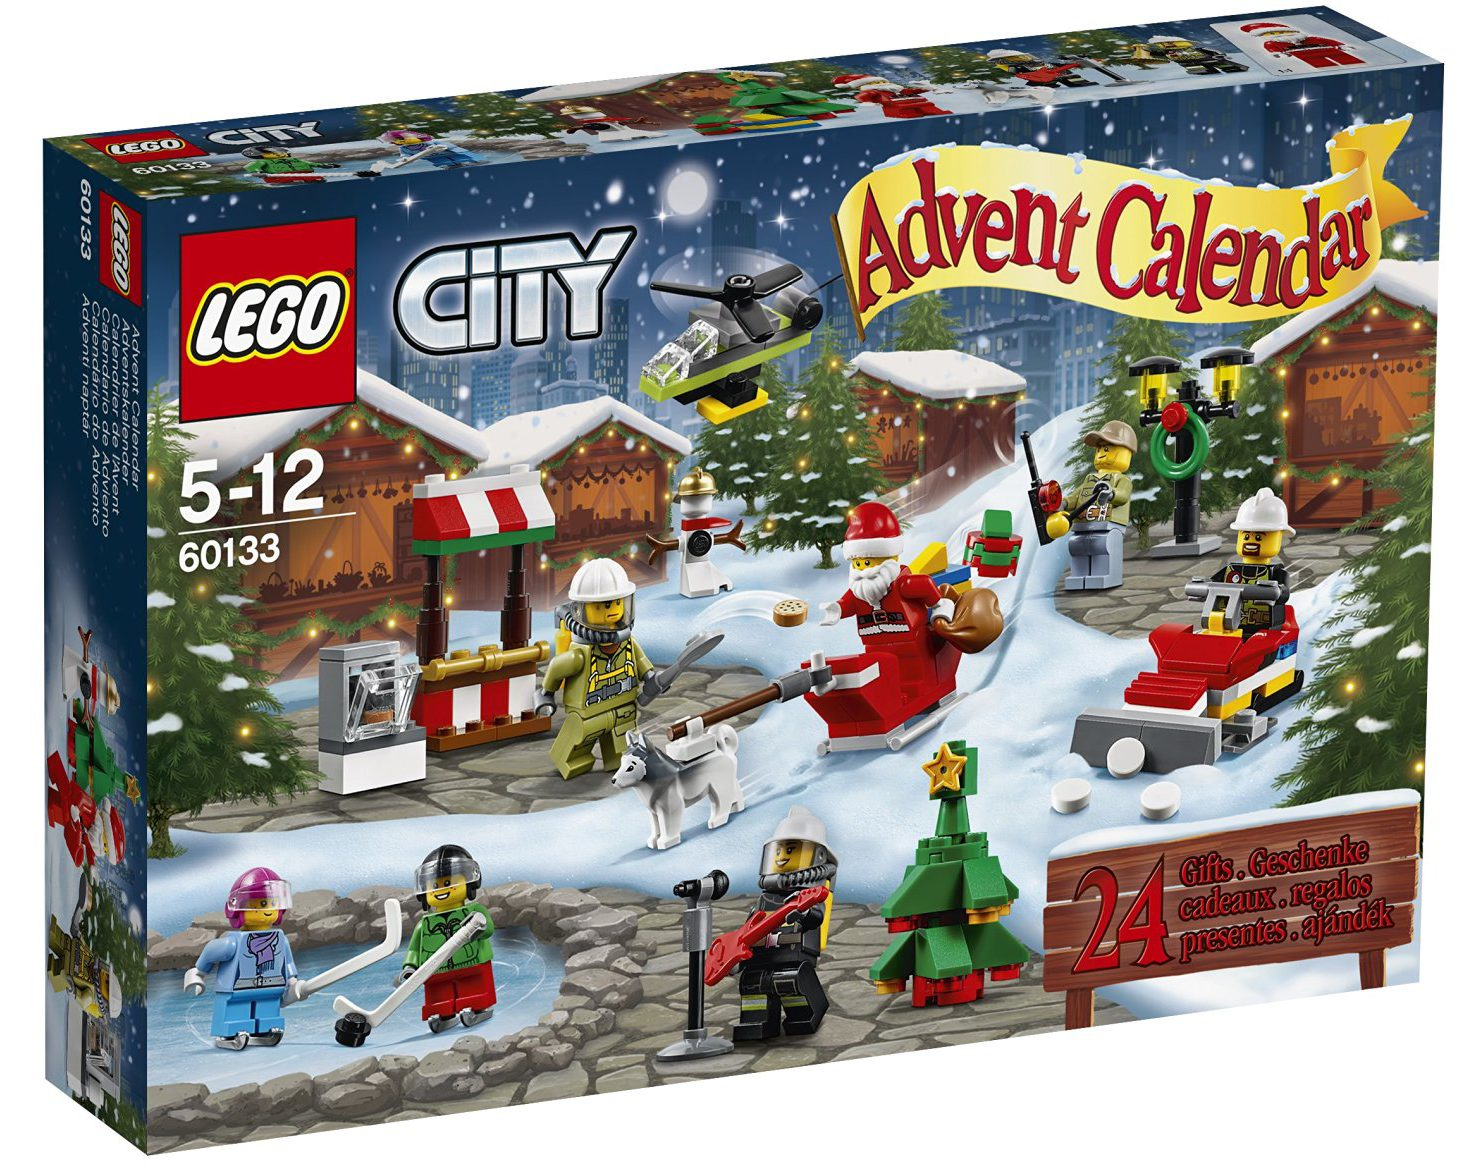 lego-cty-advent-calendar